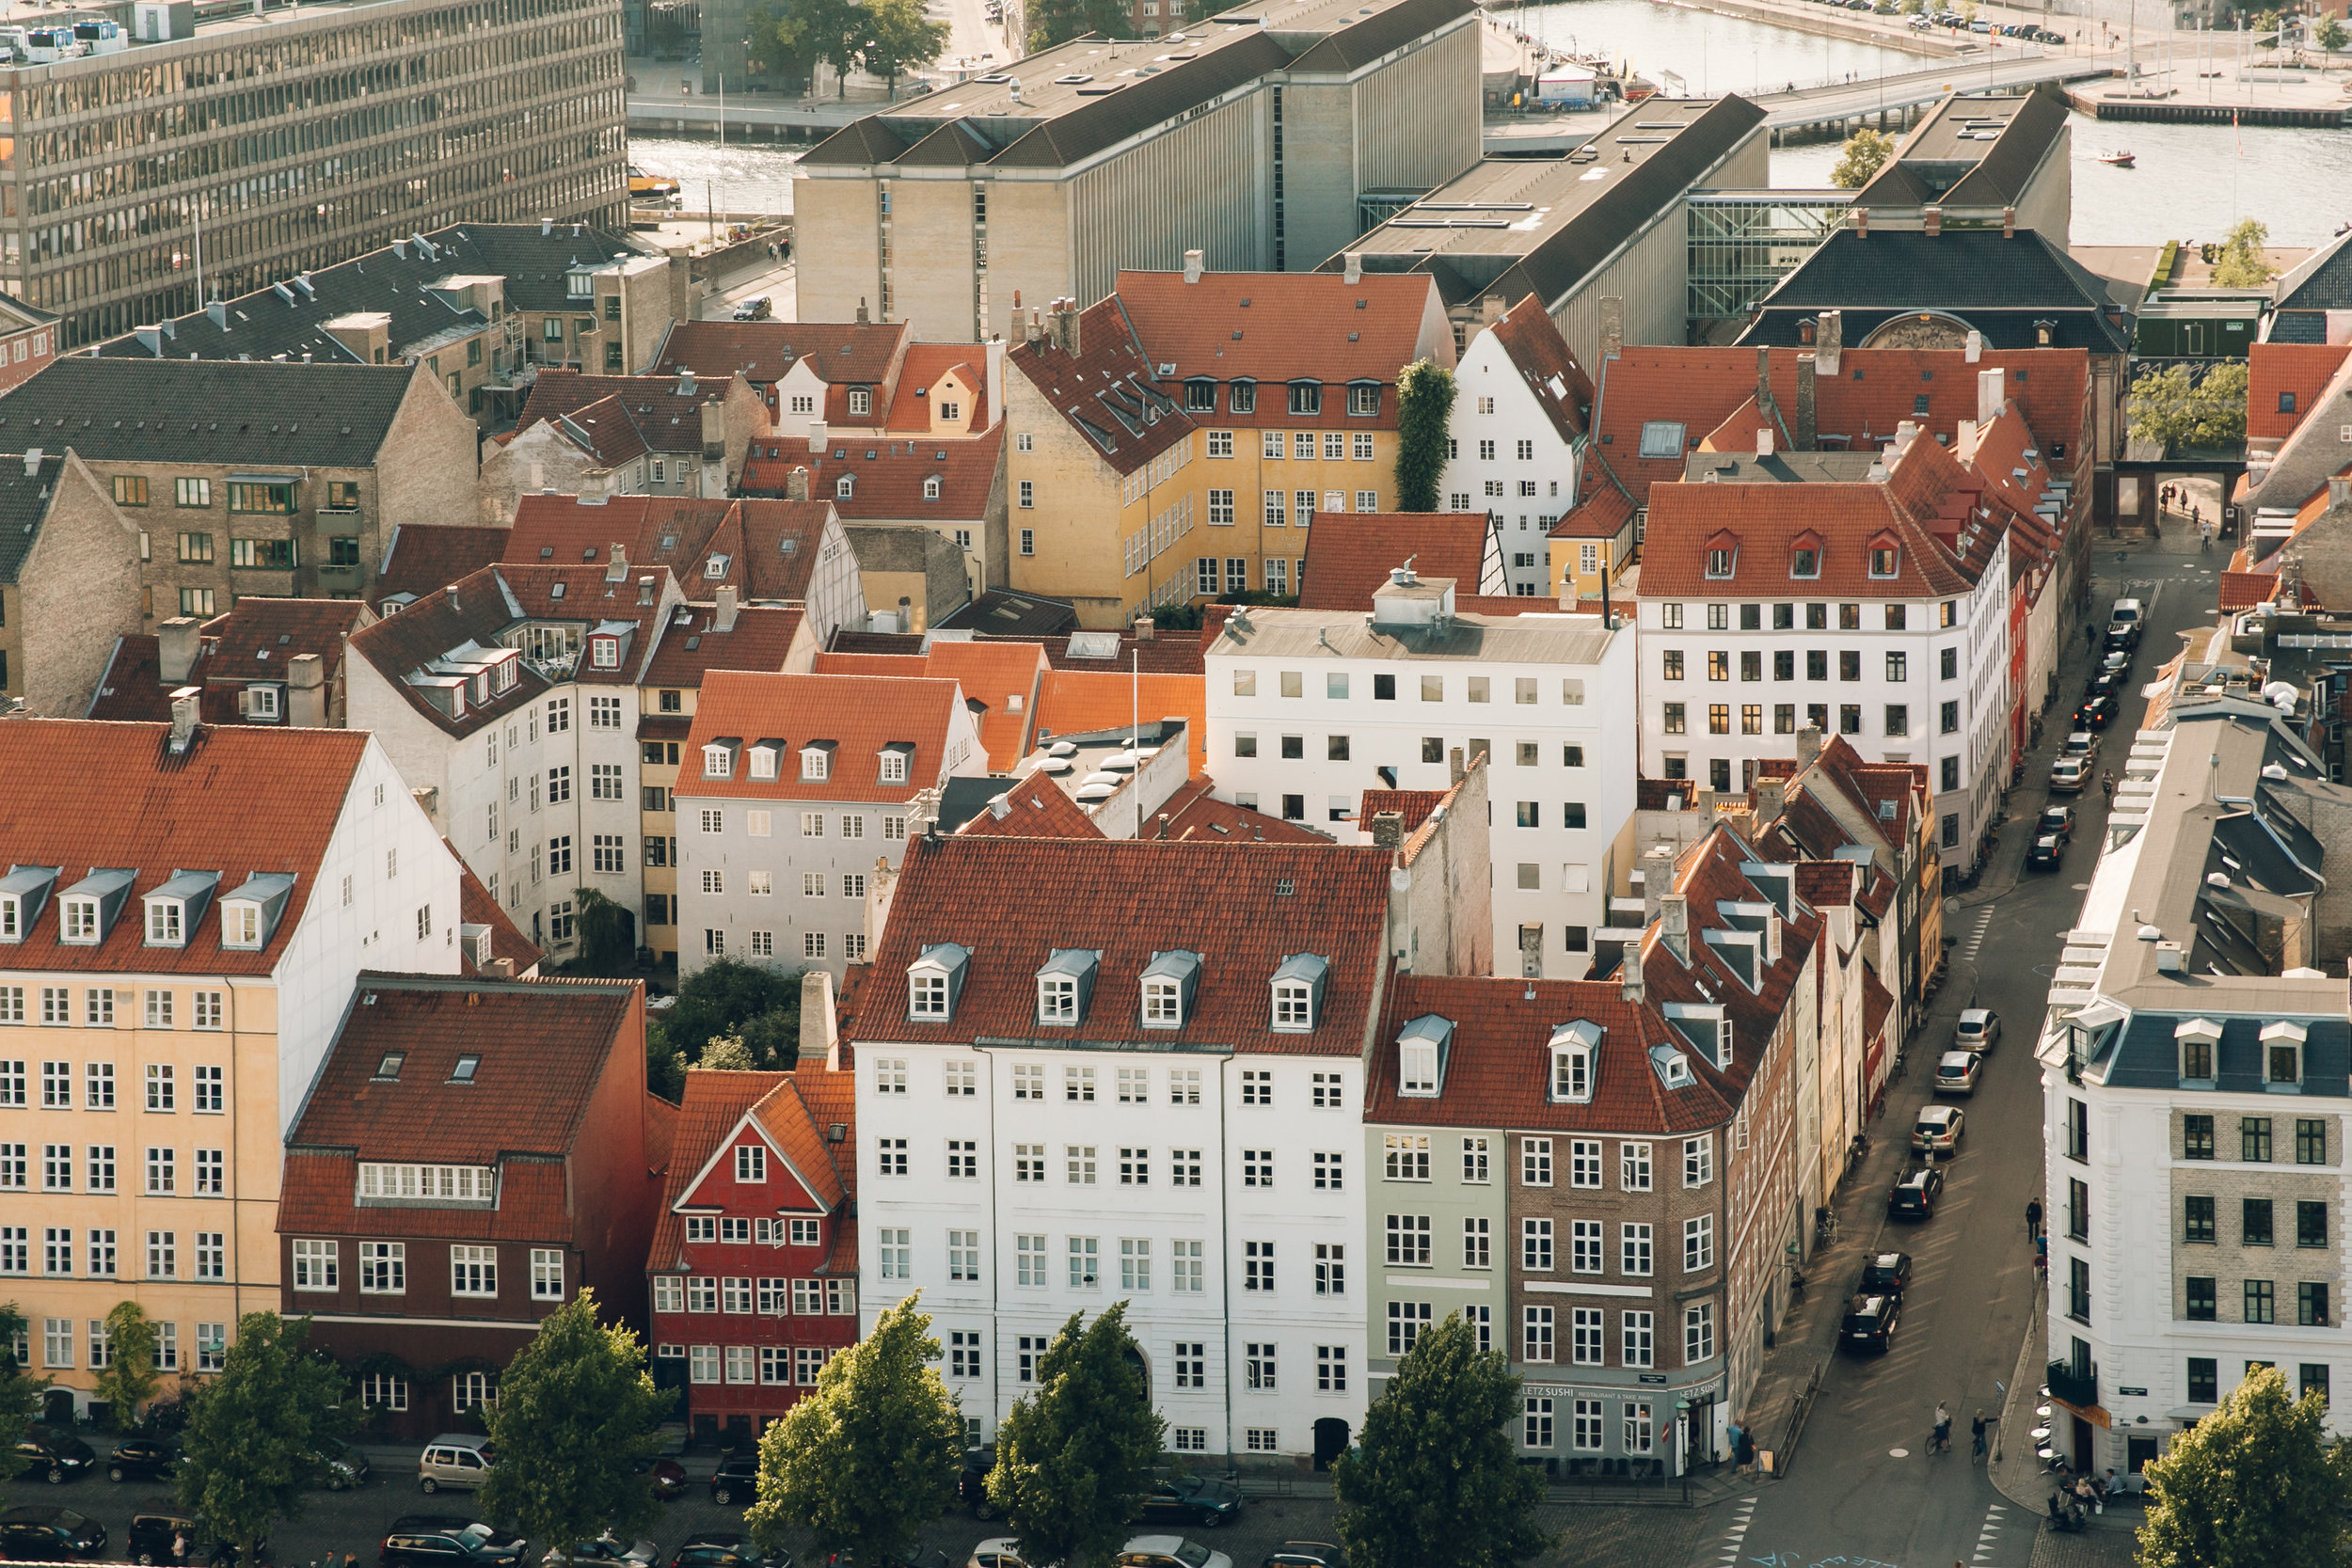 72 hours in Copenhagen - the view from the roof of the Church of Our Lady.